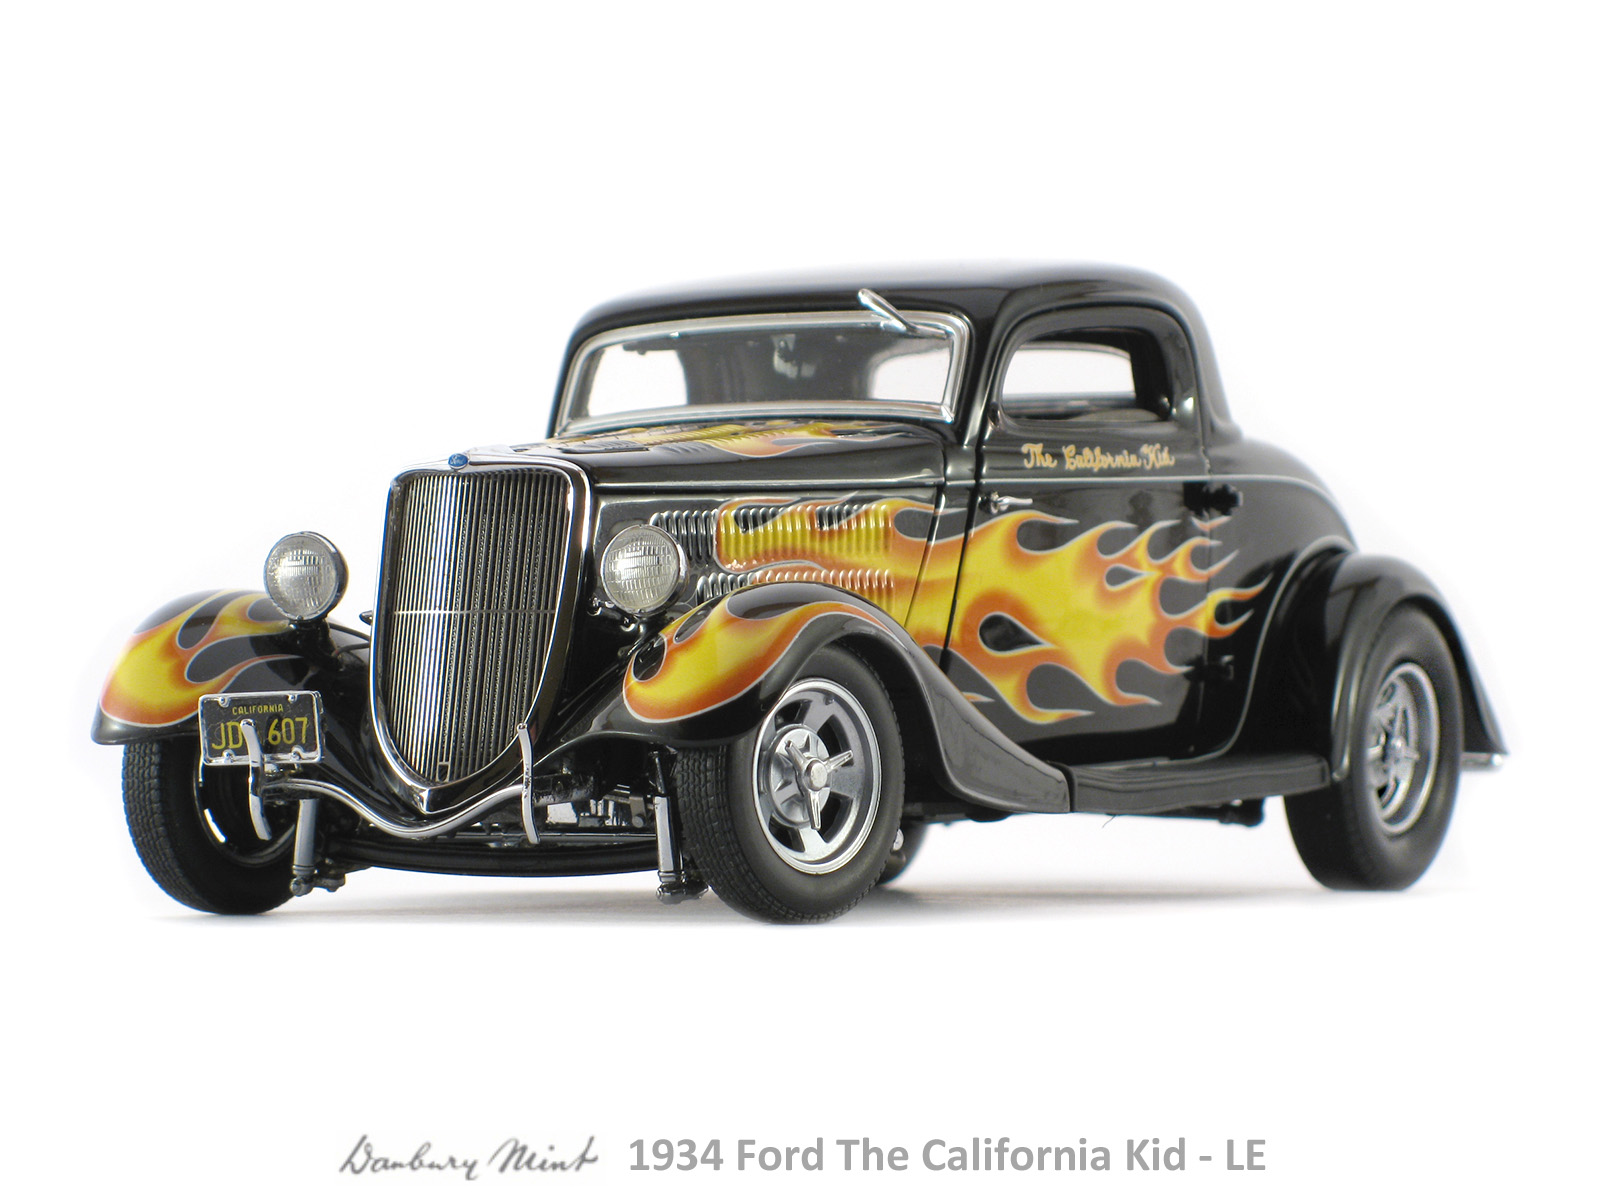 Danbury mint 1934 ford the california kid limited edition